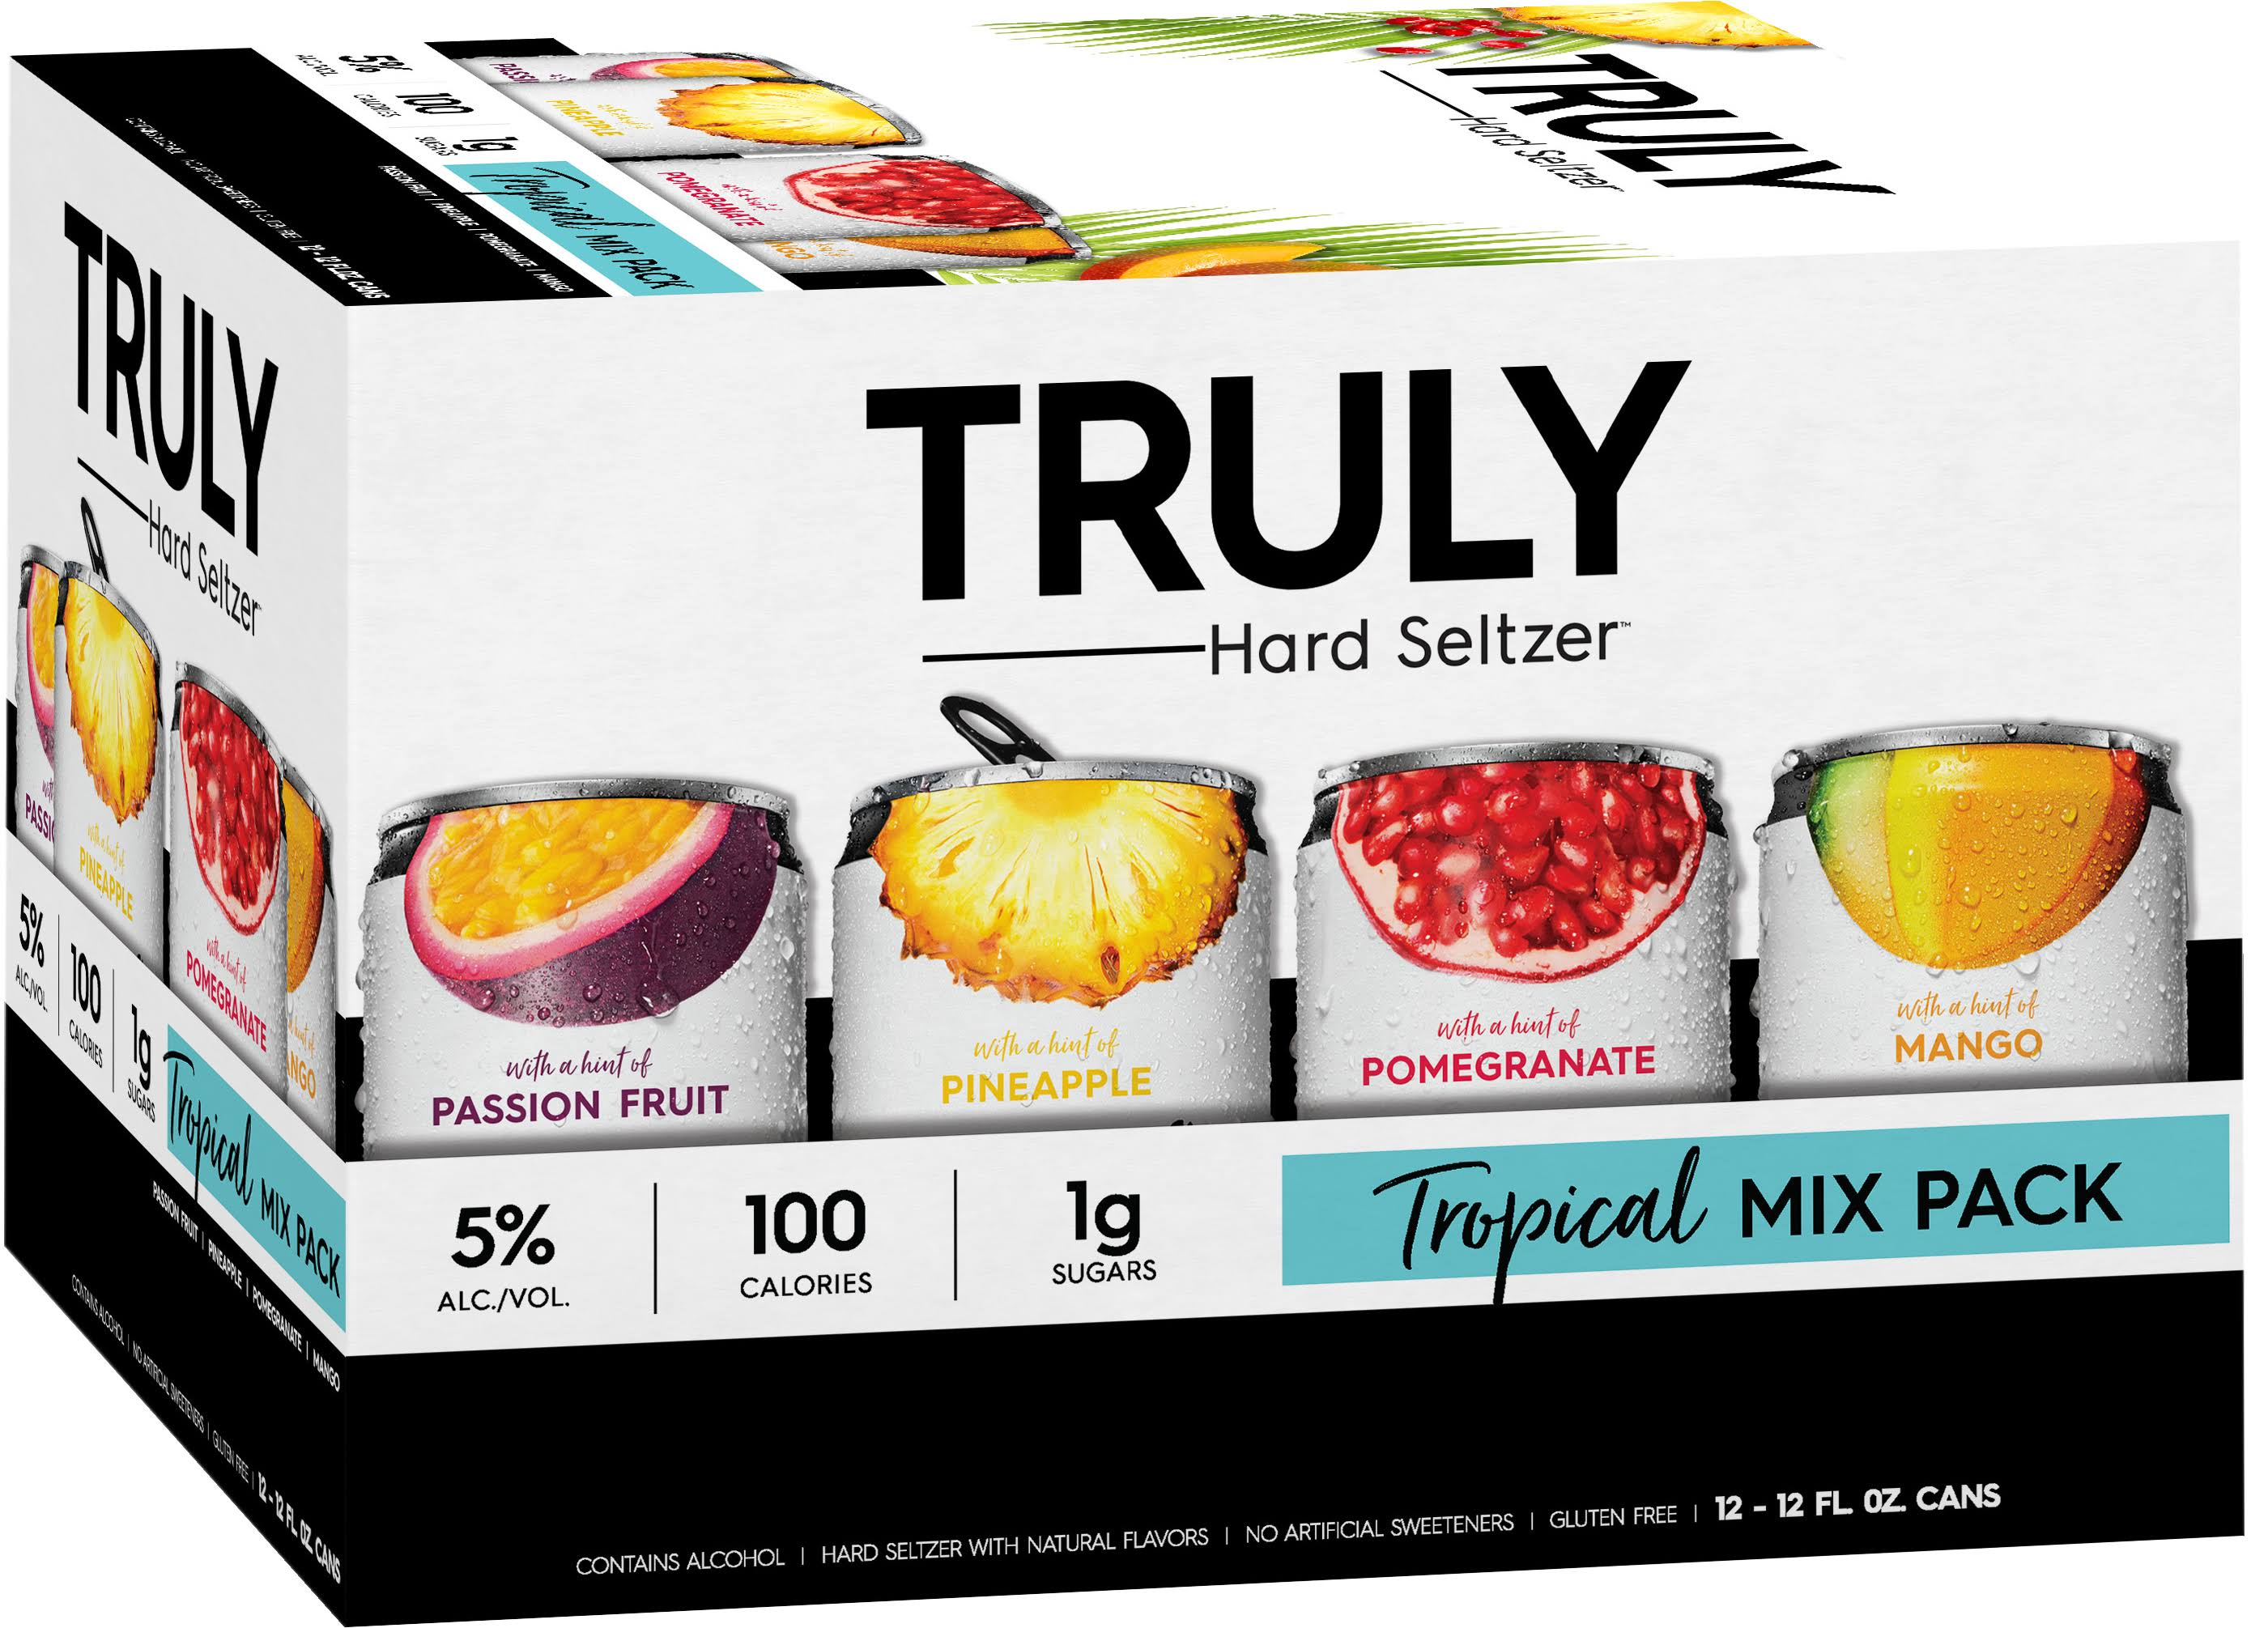 Truly Hard Seltzer Hard Seltzer, Tropical Mix Pack - 12 pack, 12 fl oz cans